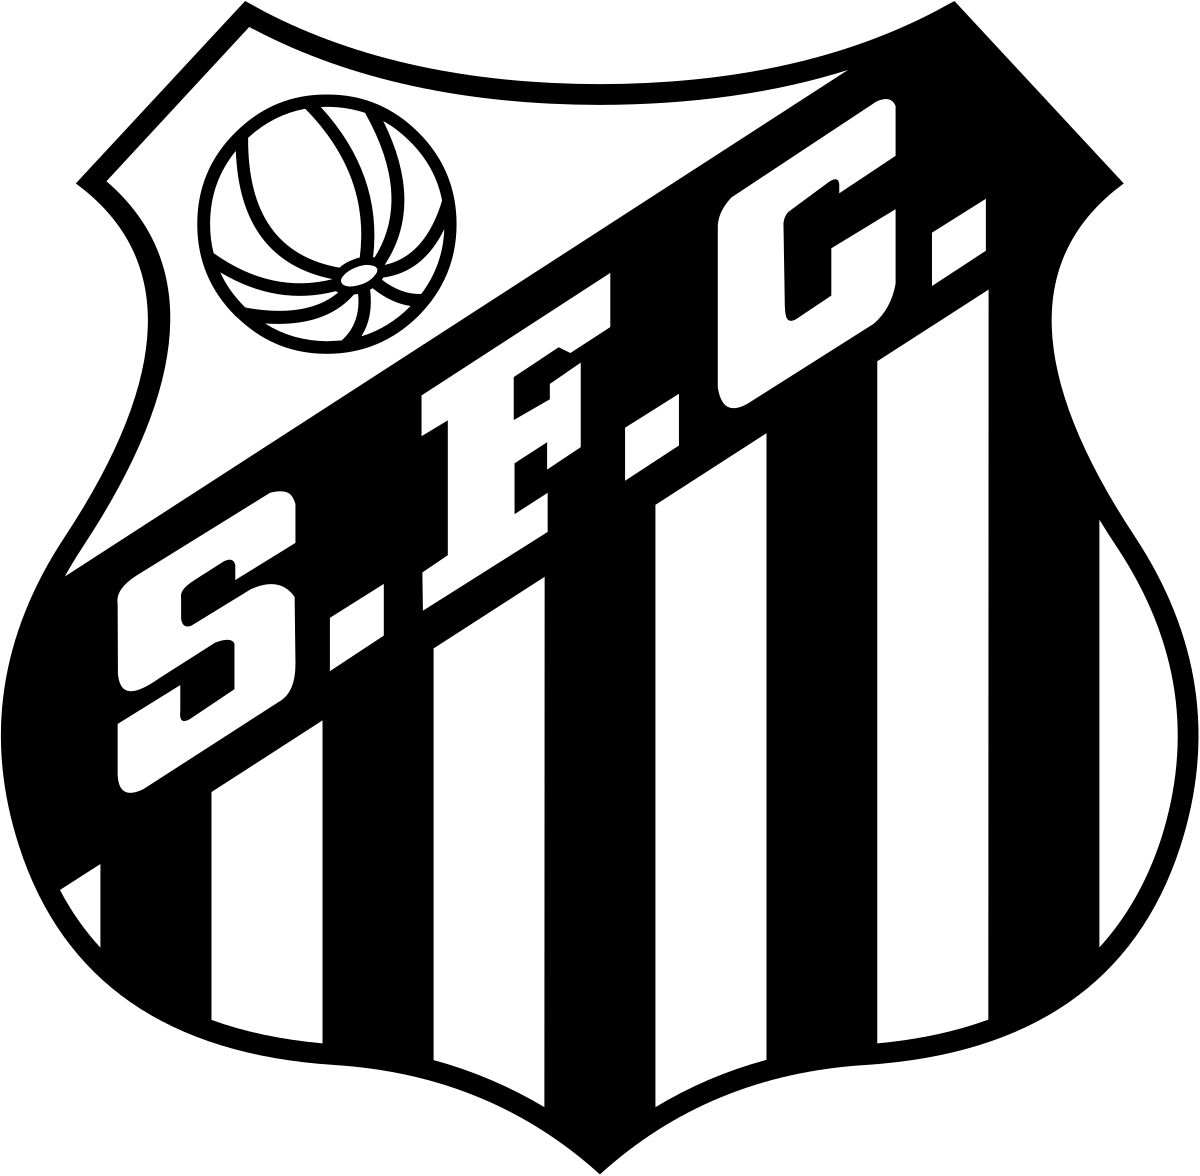 Football team black and white clipart png library Santos FC - Wikipedia png library